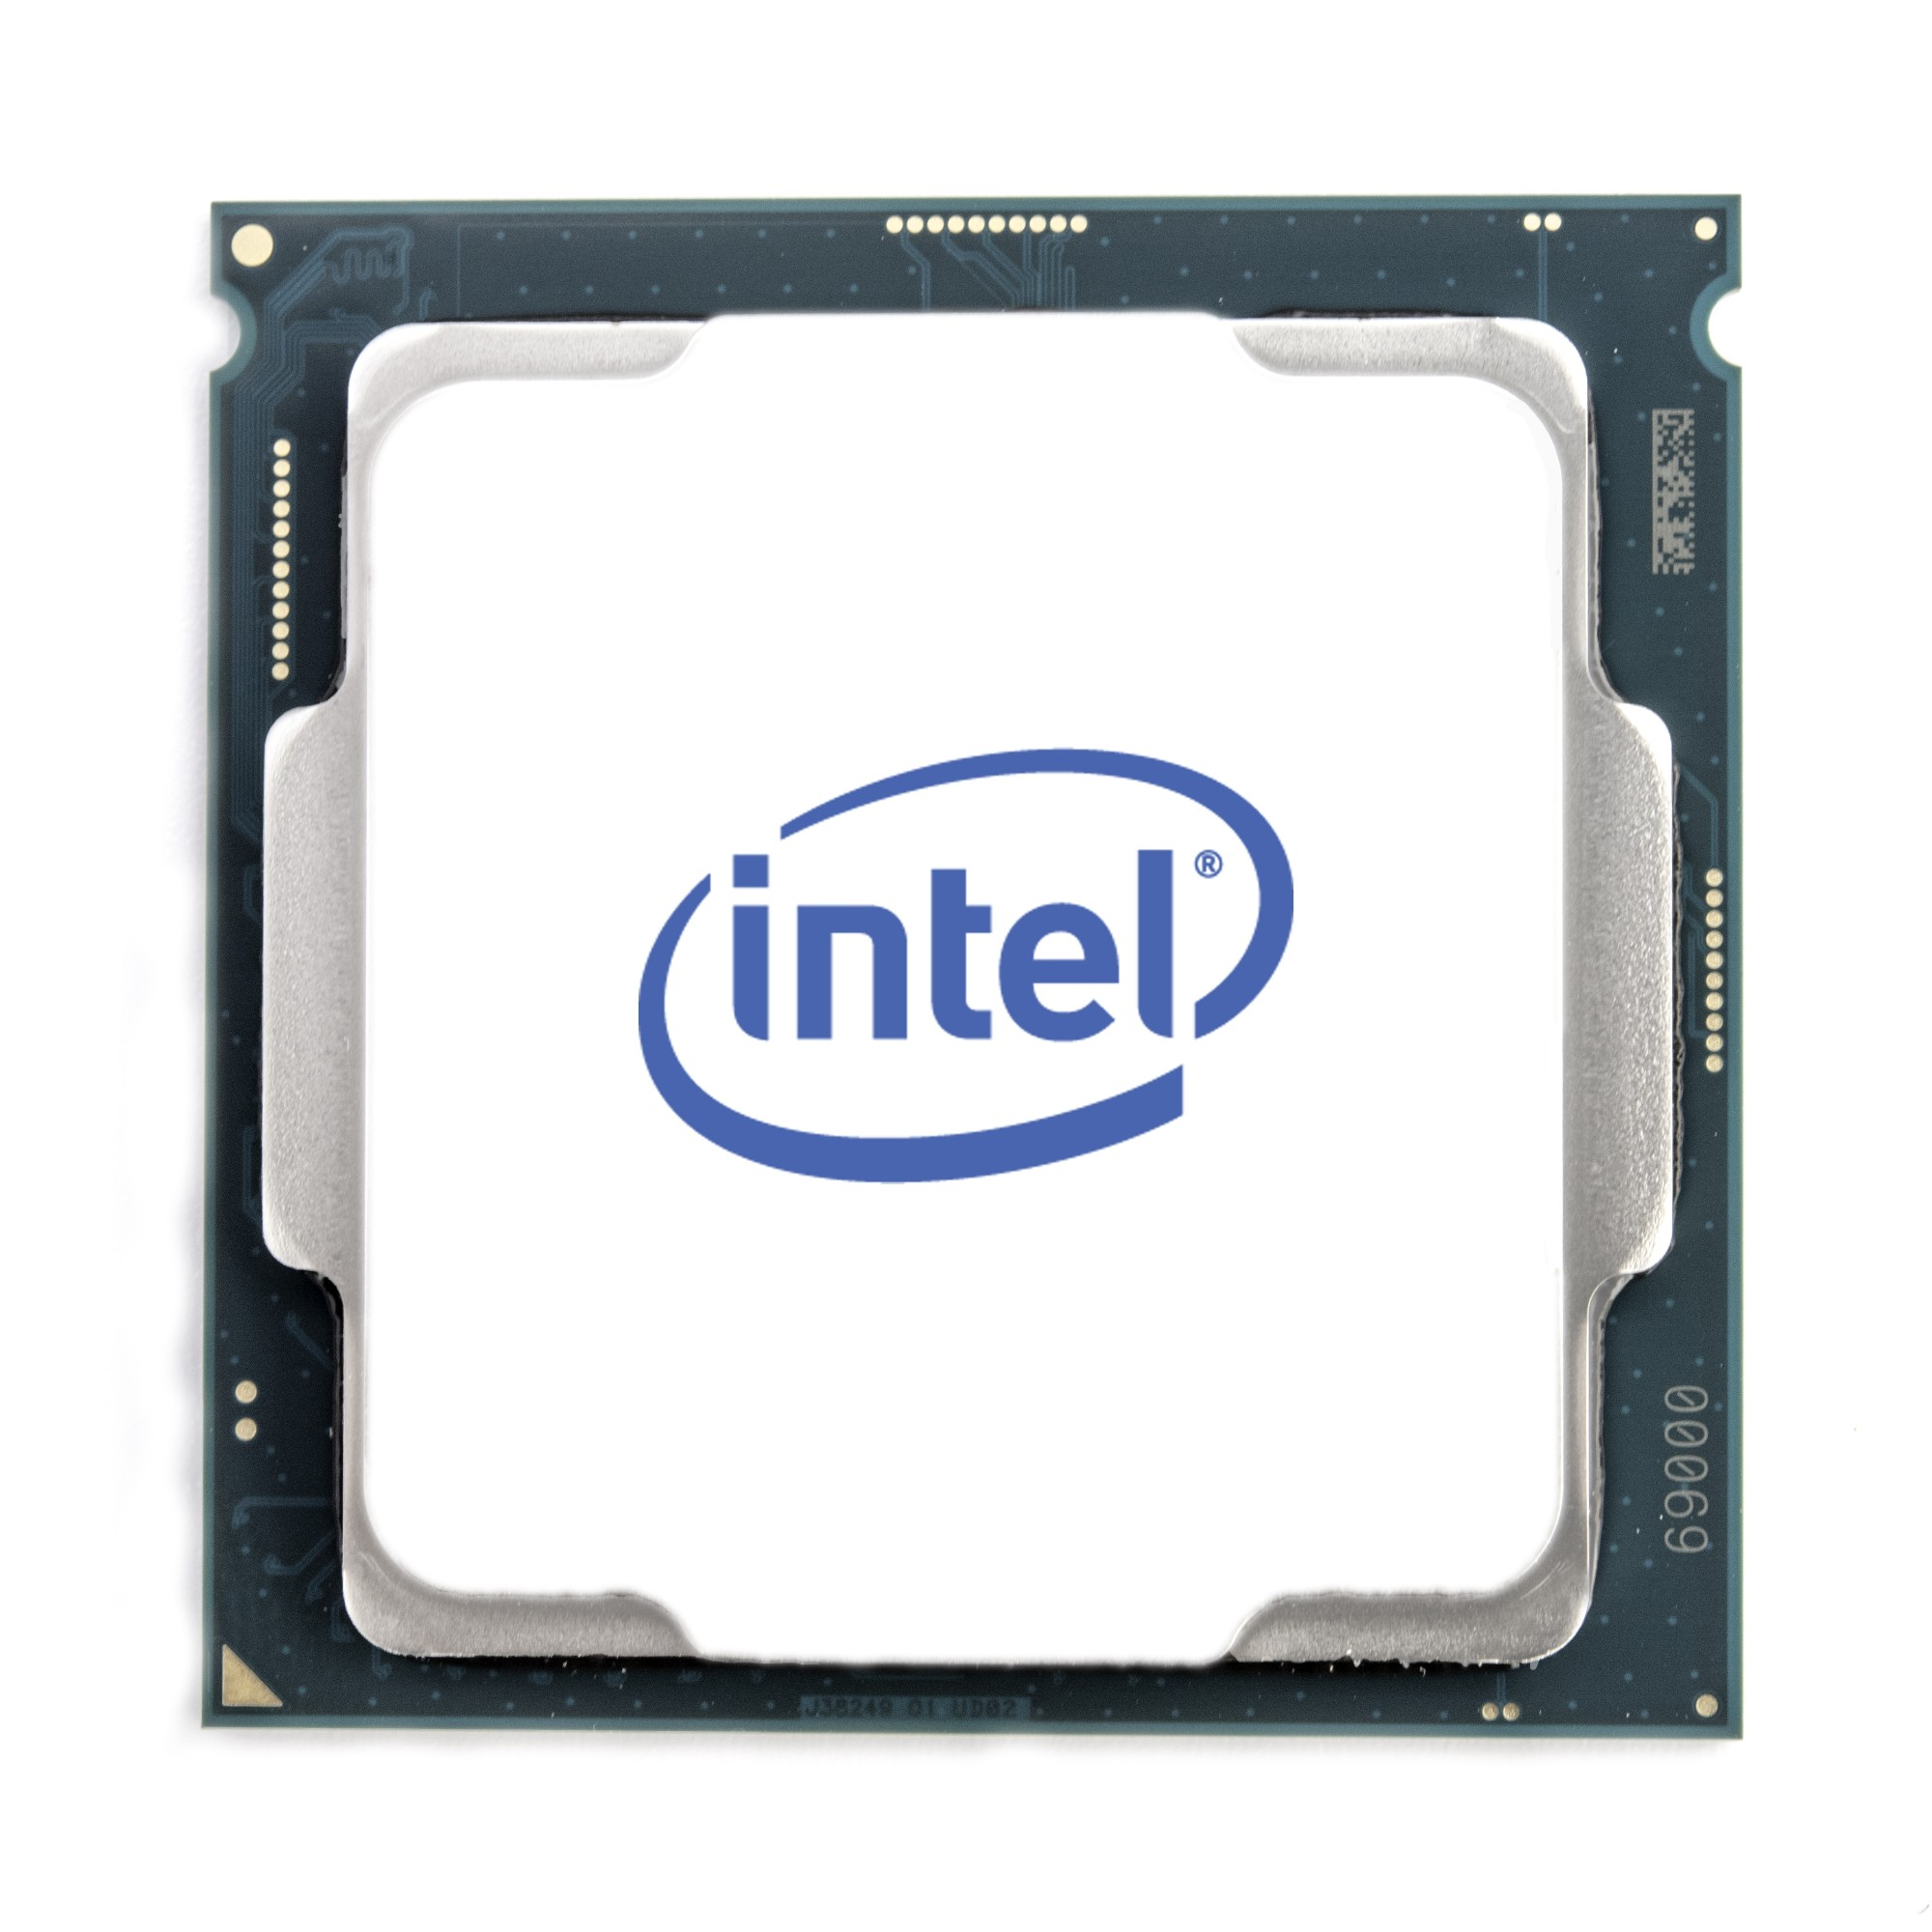 Intel Xeon 6248 processor 2.5 GHz 27.5 MB